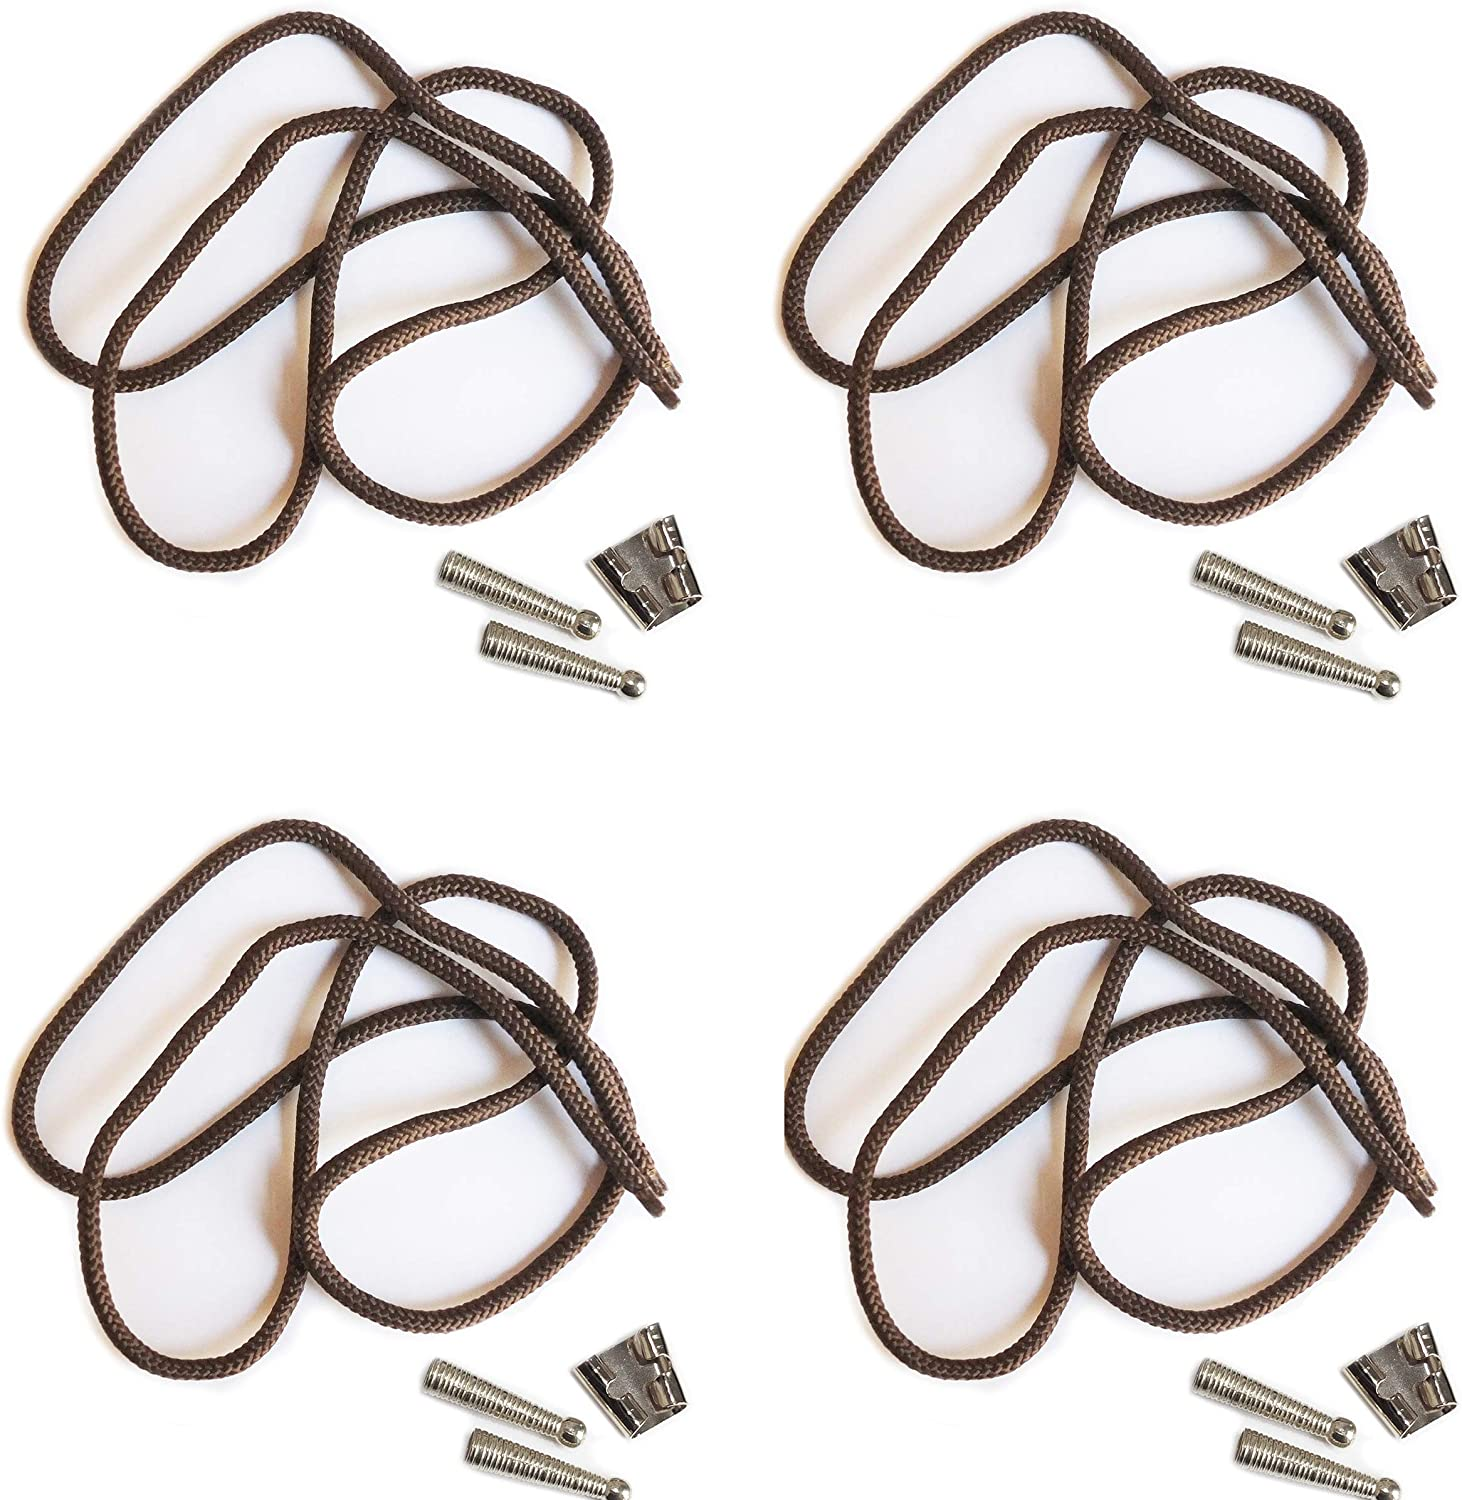 Blank Bolo String Tie Parts Kit Standard Slide Textured Tips Brown Cord DIY Silver Tone Supplies for